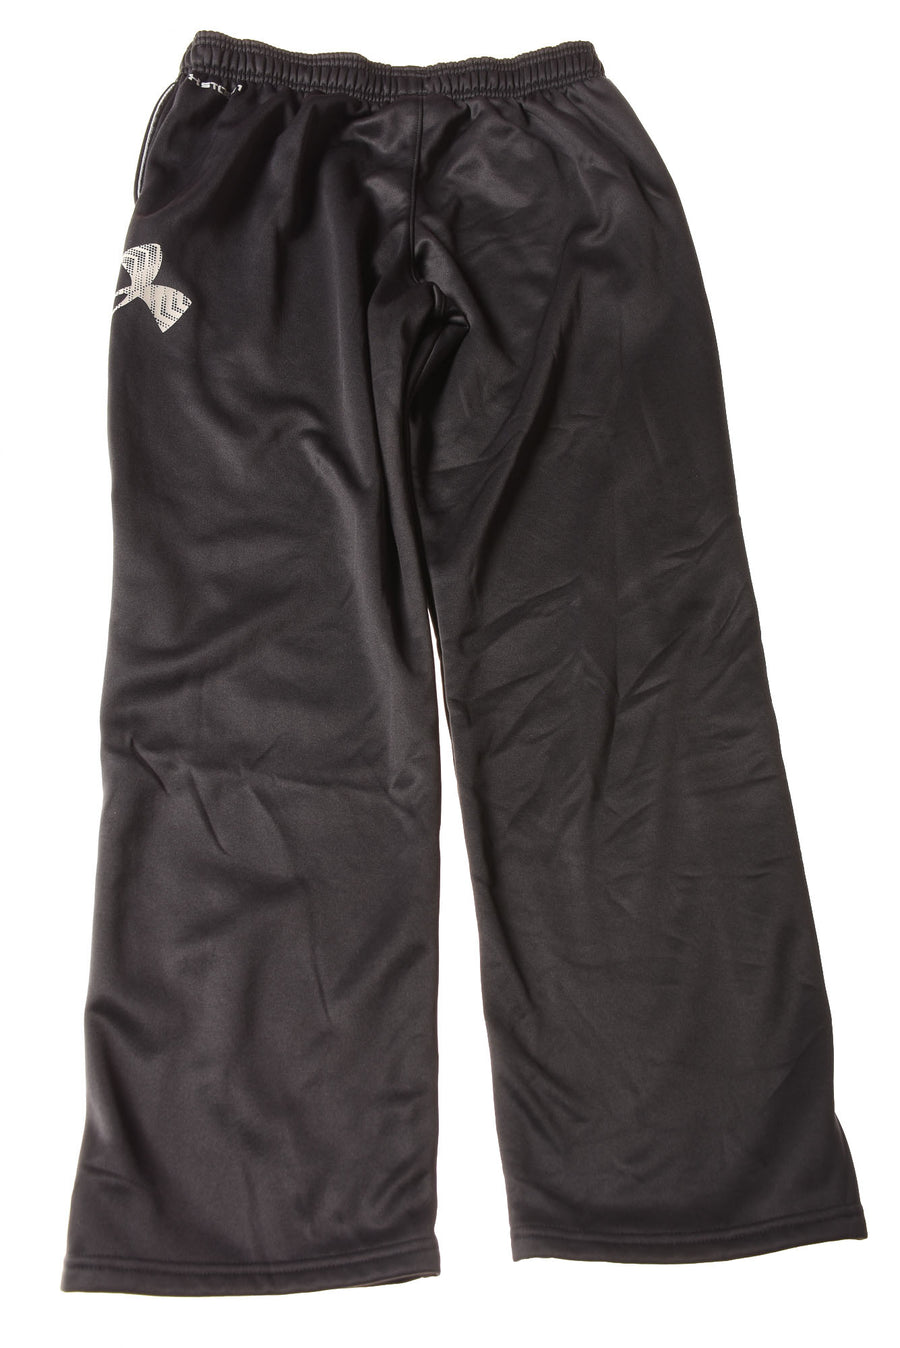 USED Under Armour Boy's Pants X-Large Black